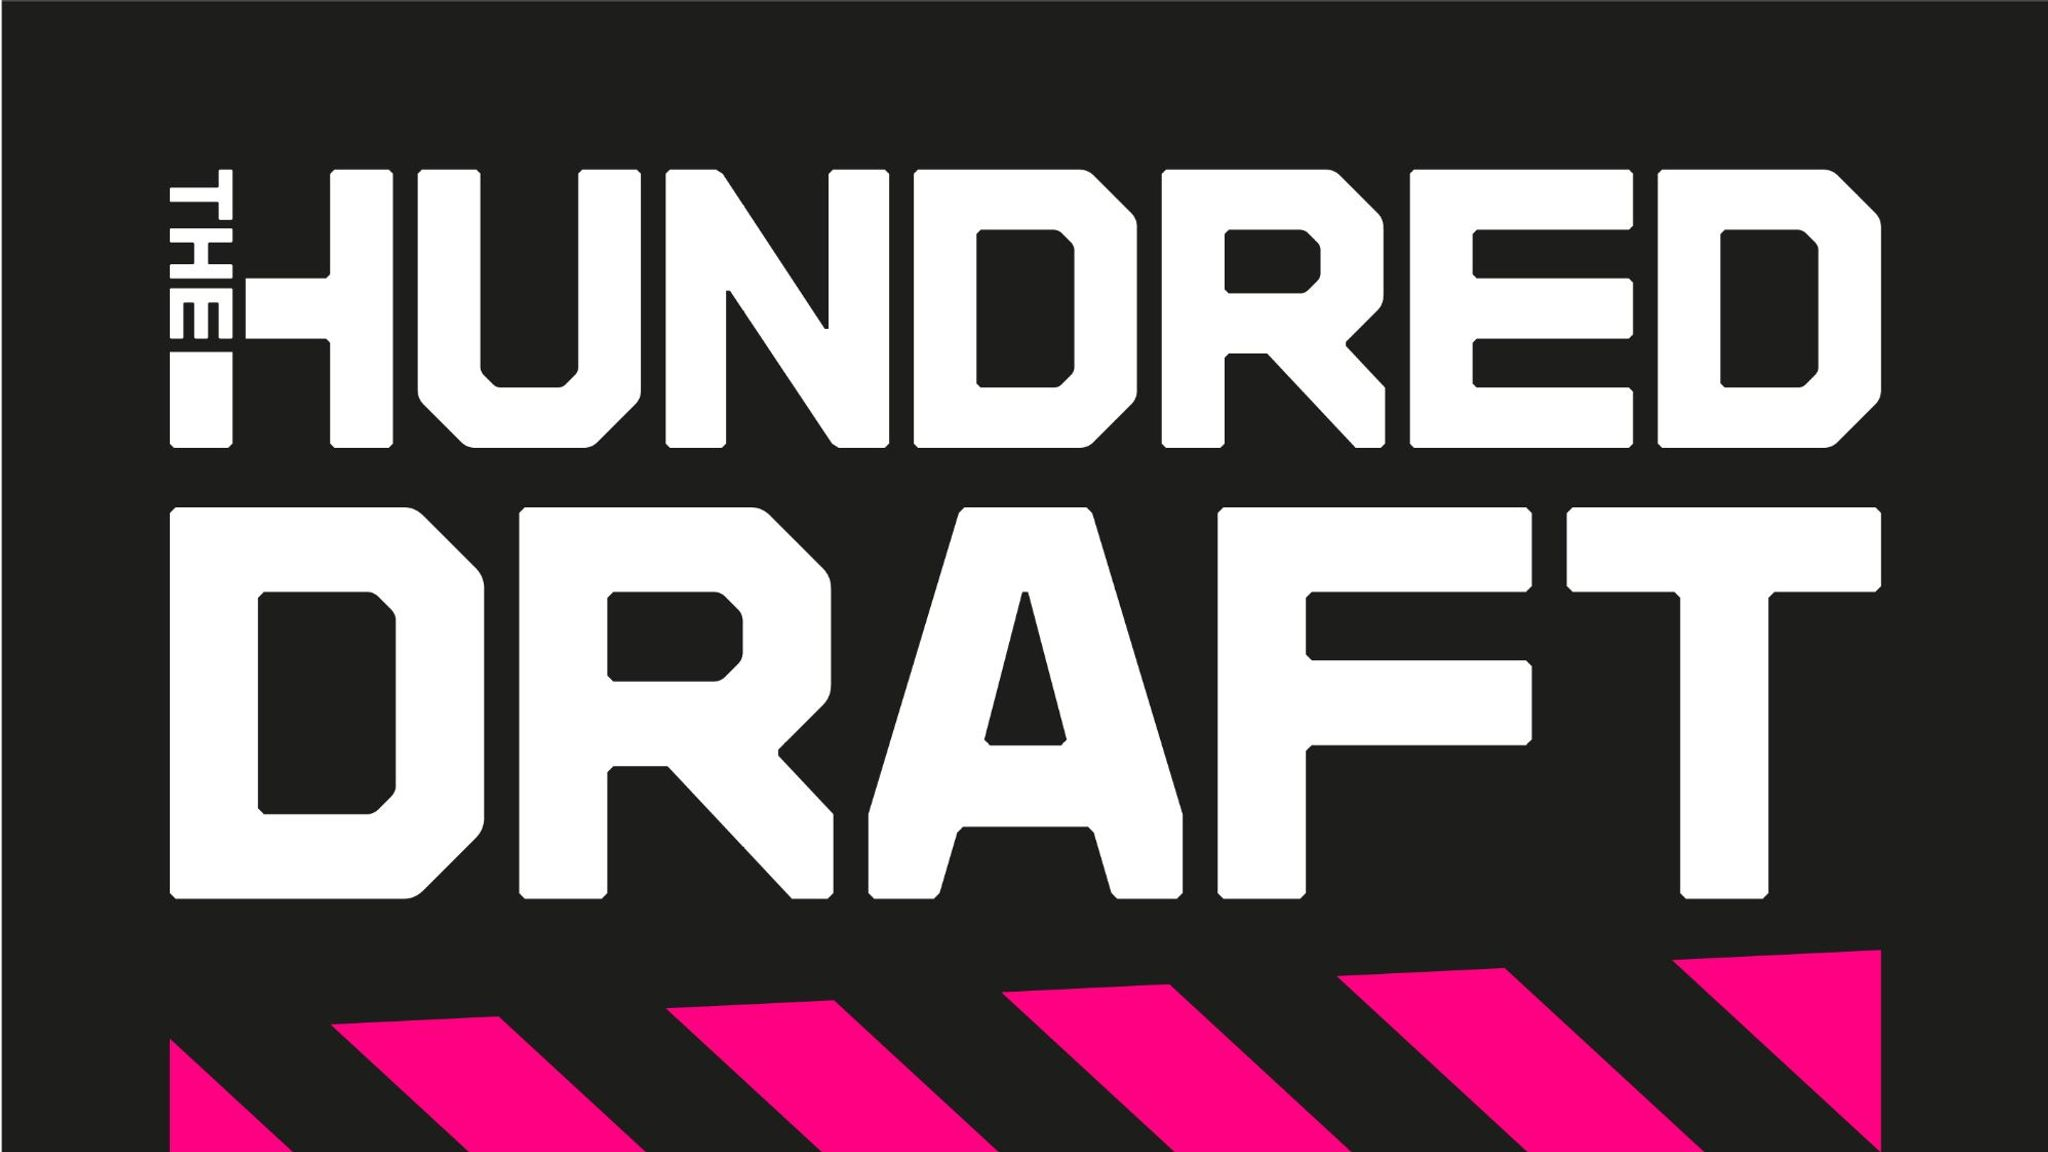 Who registered for The Hundred Draft and in which price category?